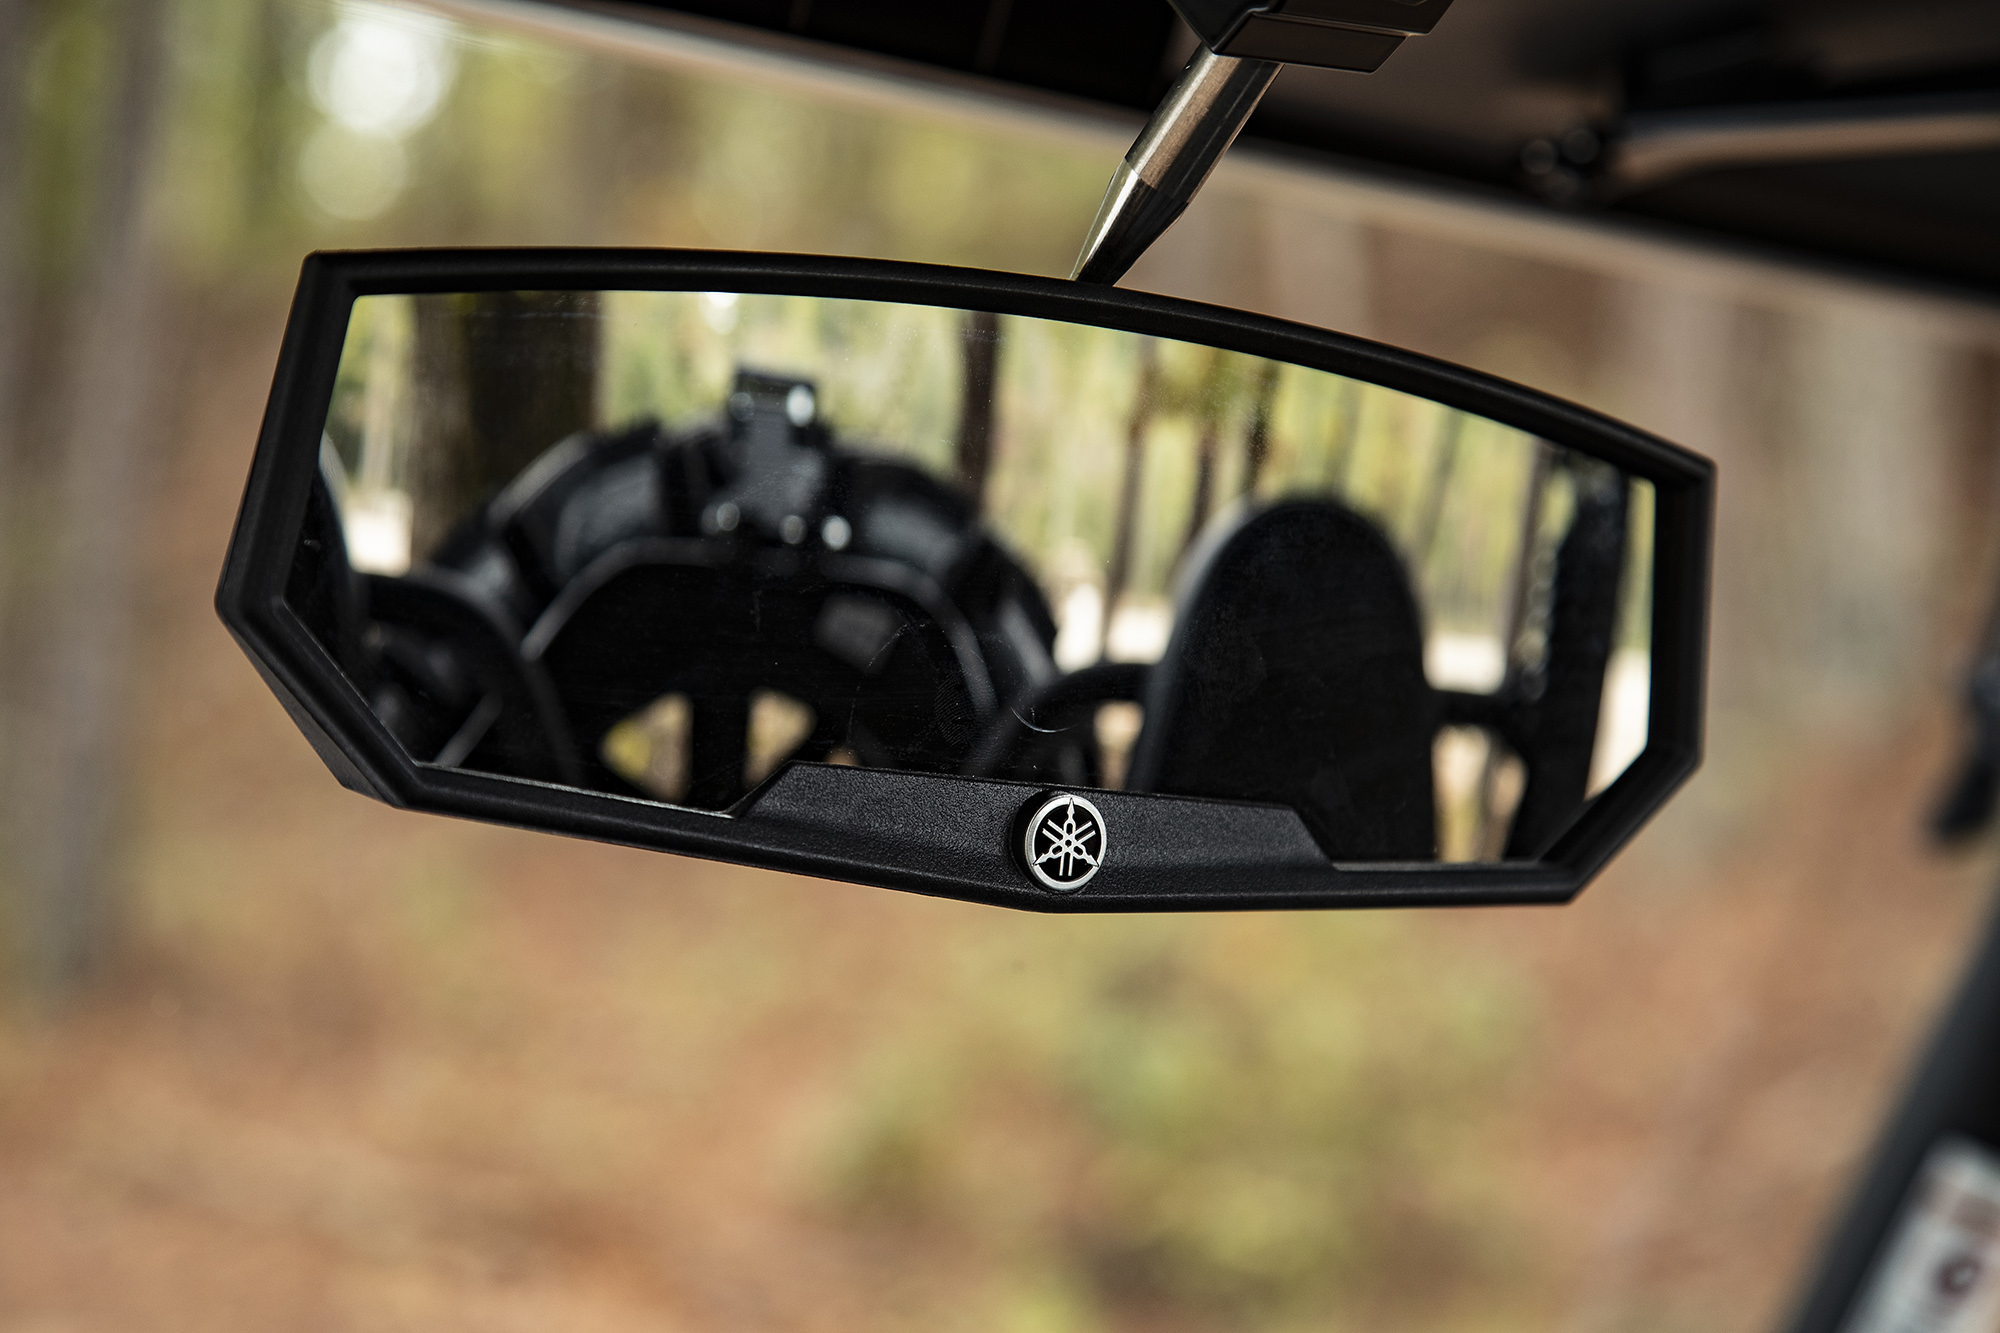 A new Yamaha center mirror and mounting bracket are available